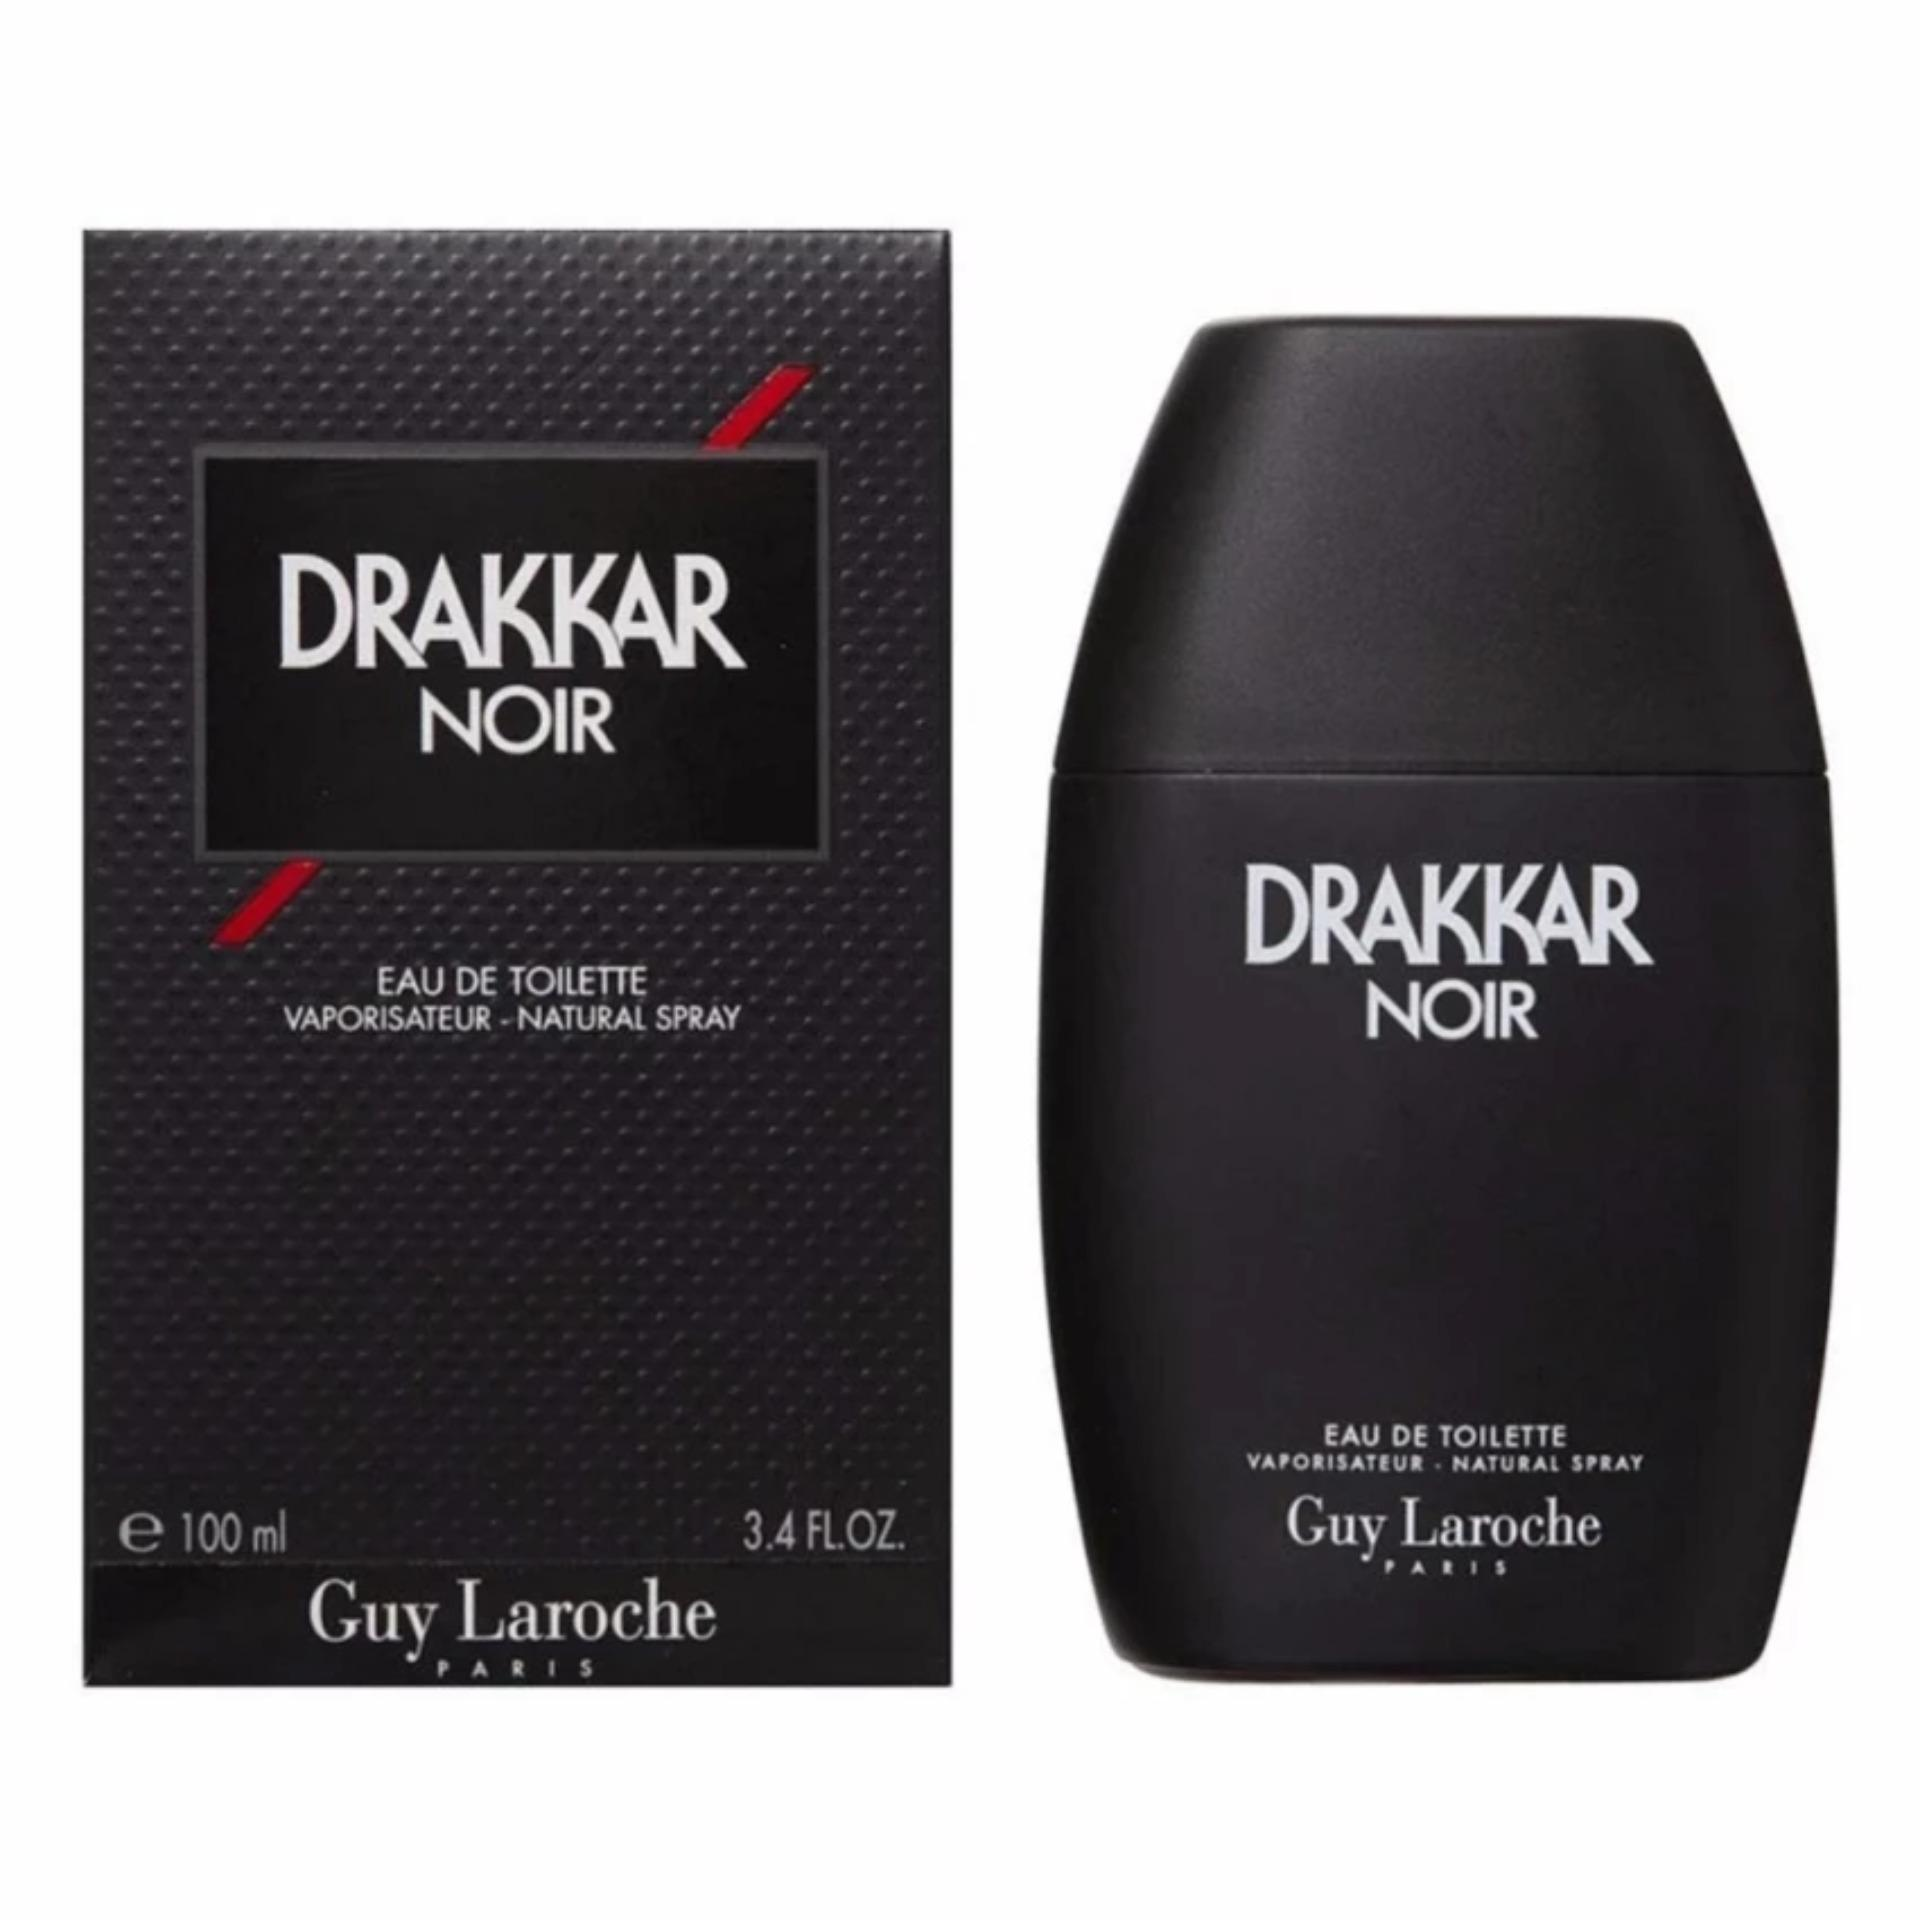 Guy Laroche Drakkar Noir Eau De Toilette for Men 100ml